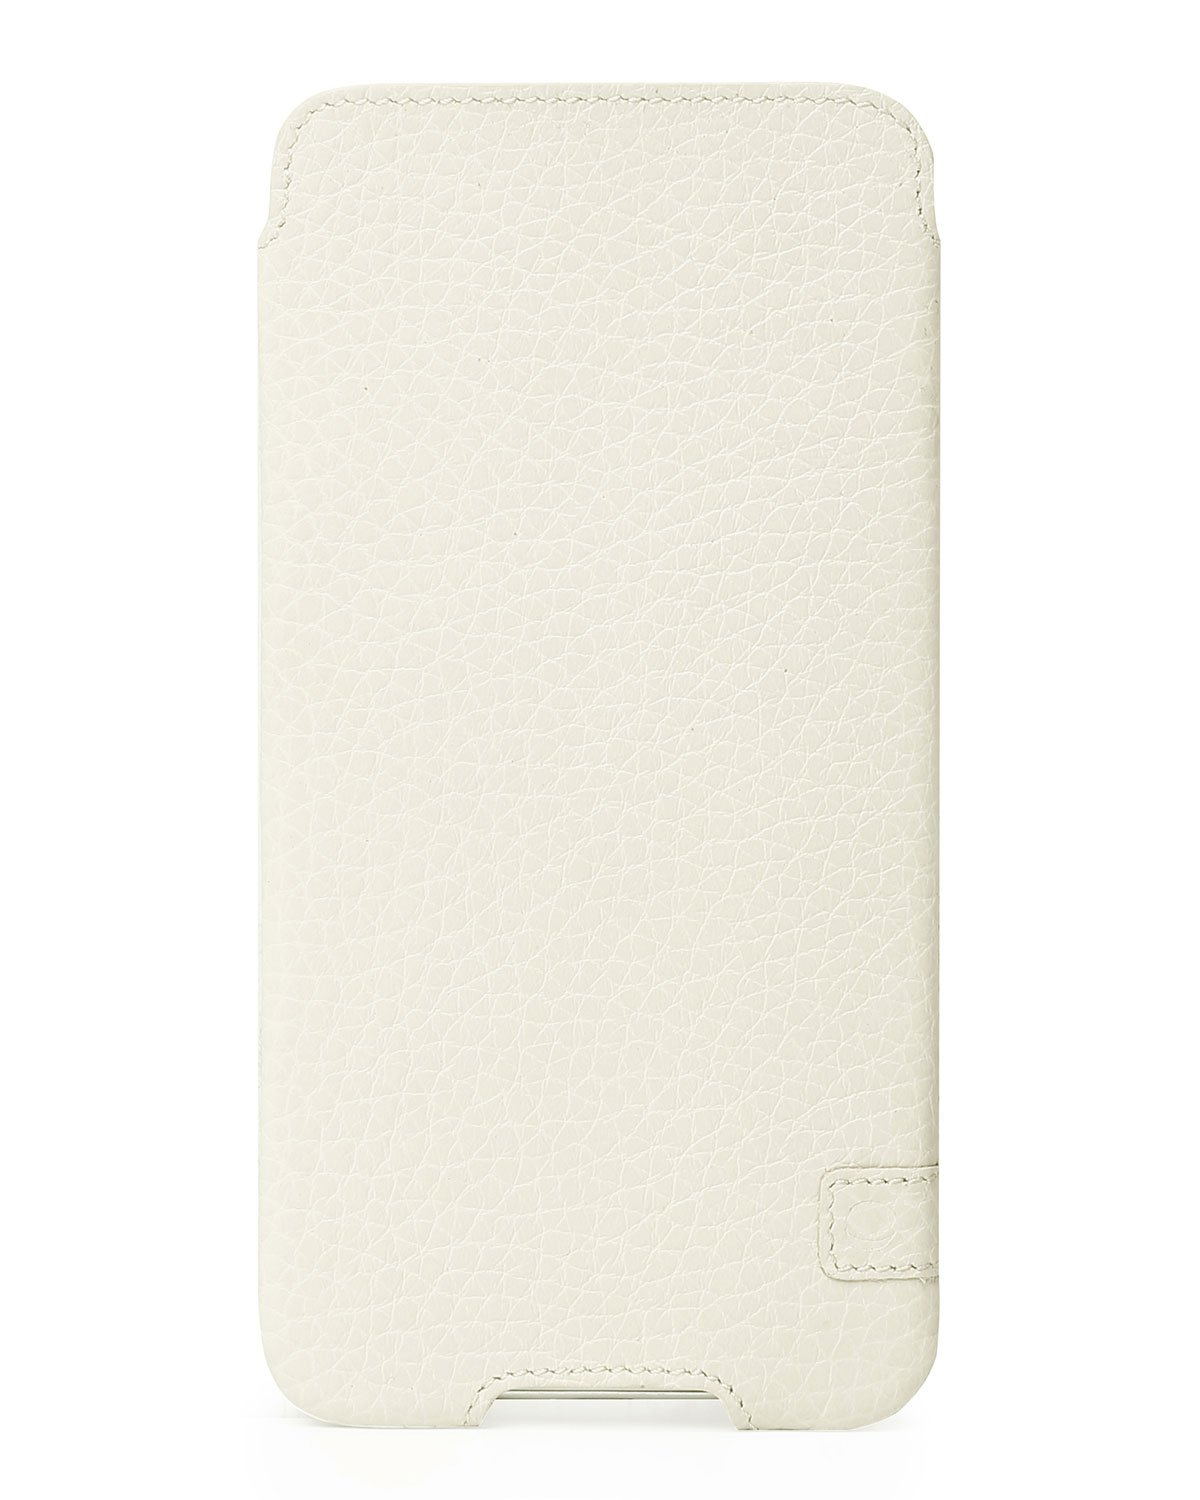 Beyza Cases Zero a Thin Leather Sleeve Pouch Case for iPhone X - Beige